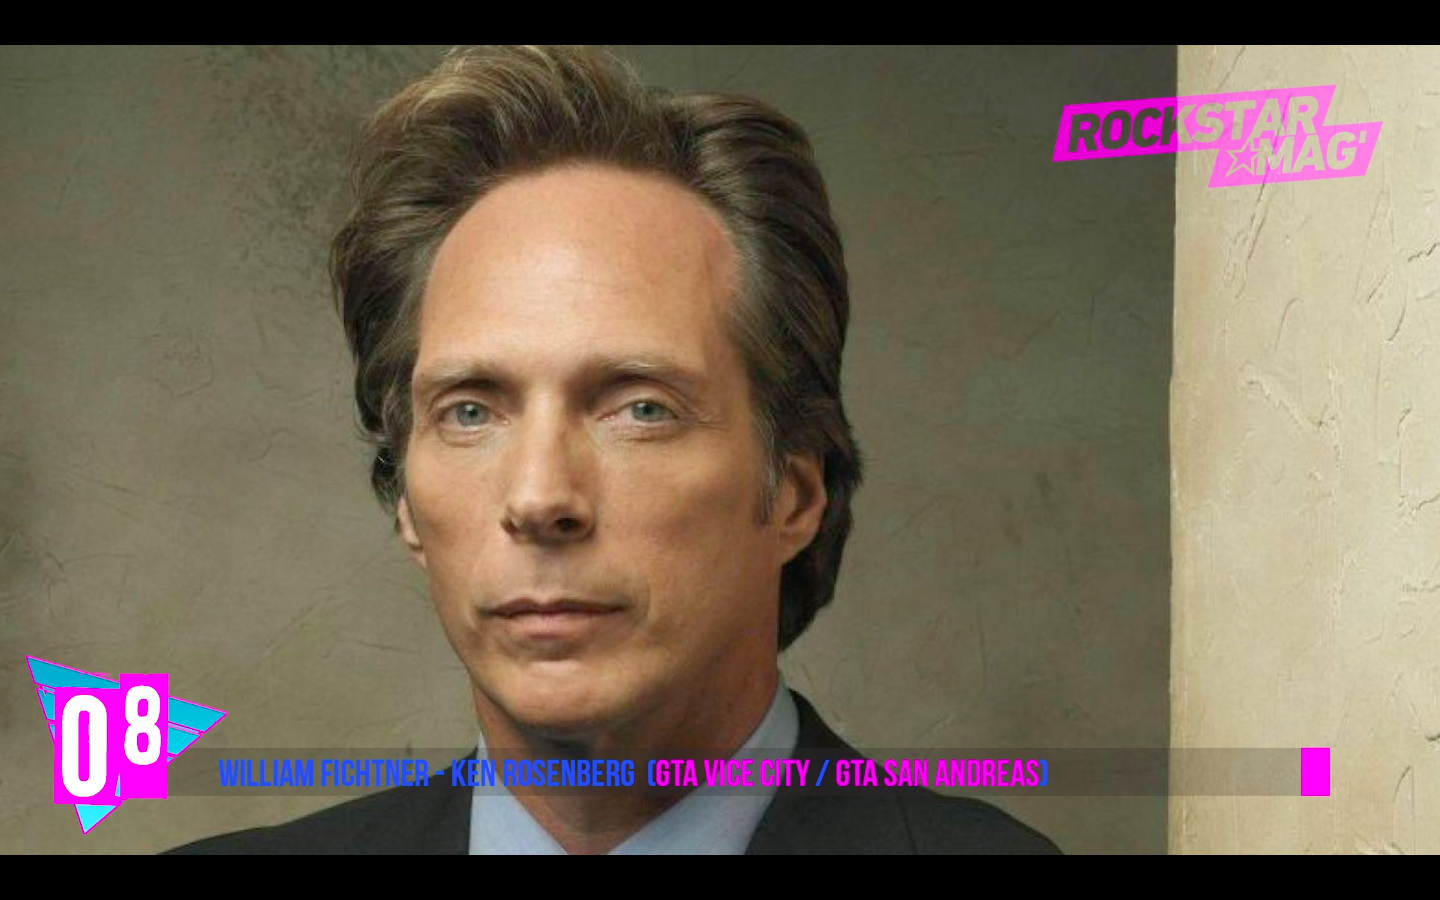 Top 08 Célébrités William Fichtner